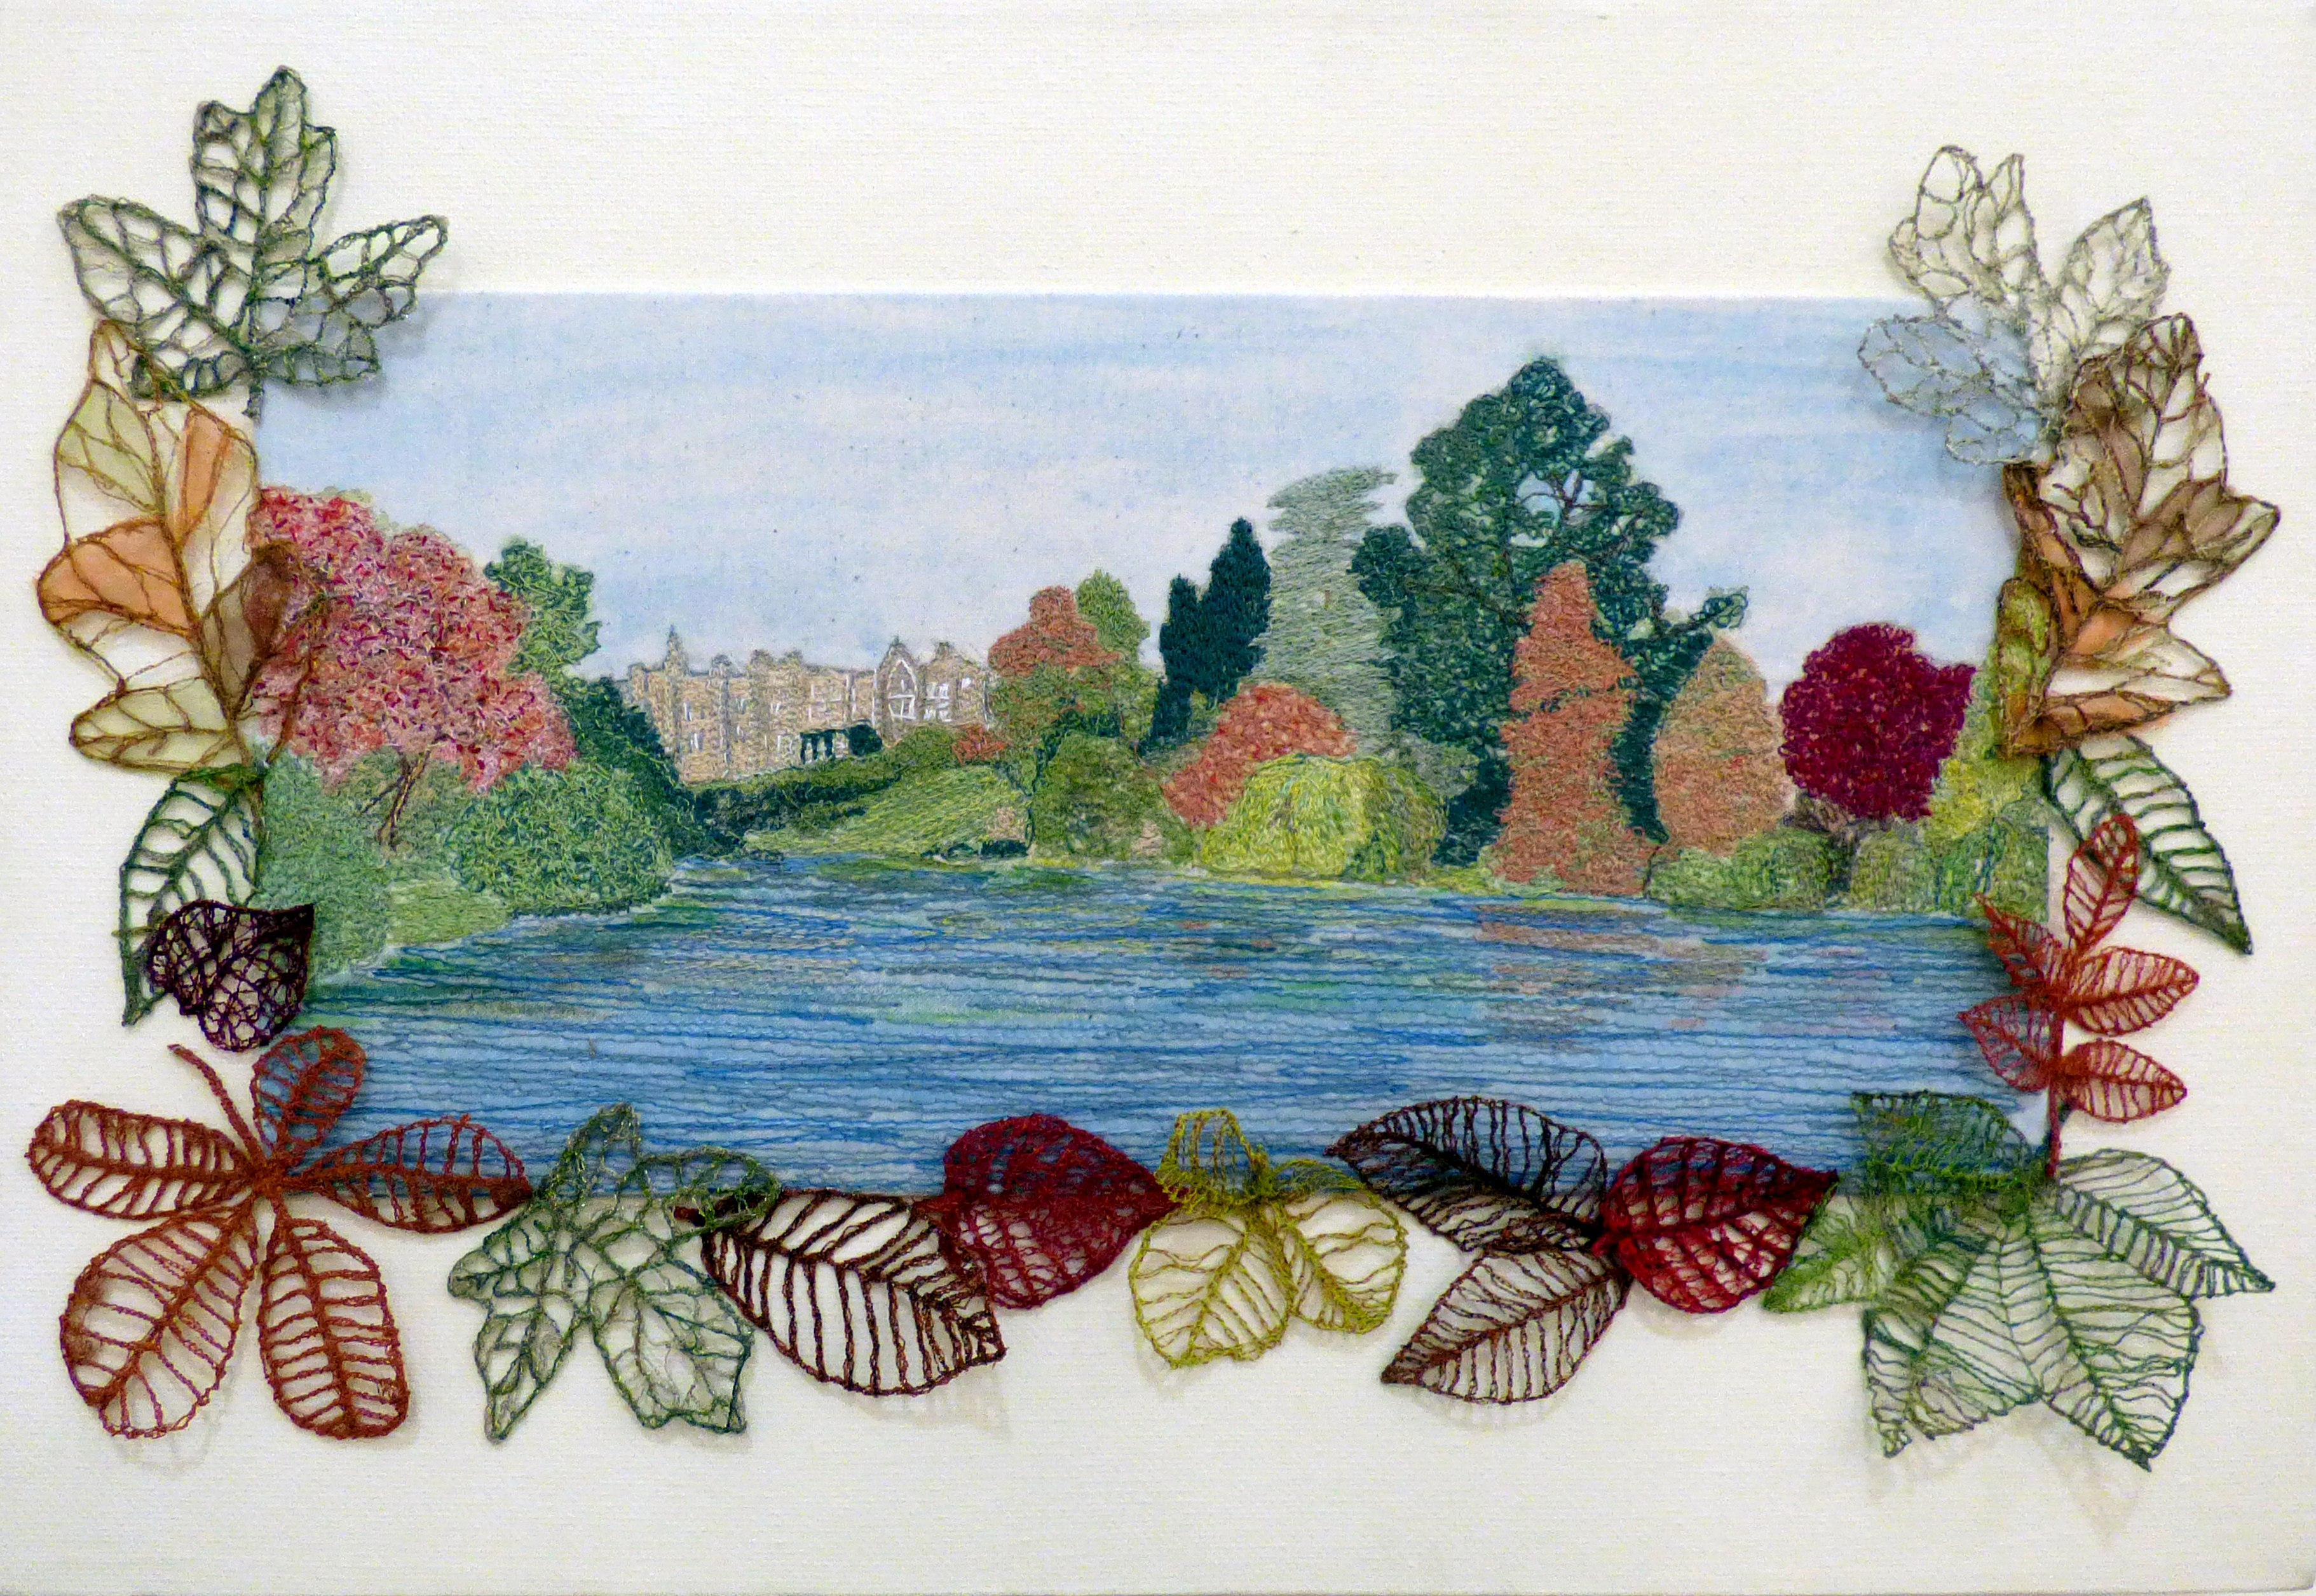 SHEFFIELD PARK, SUSSEX by Ann Cornes, Glossop & District EG, water soluble fabric and machine stitch